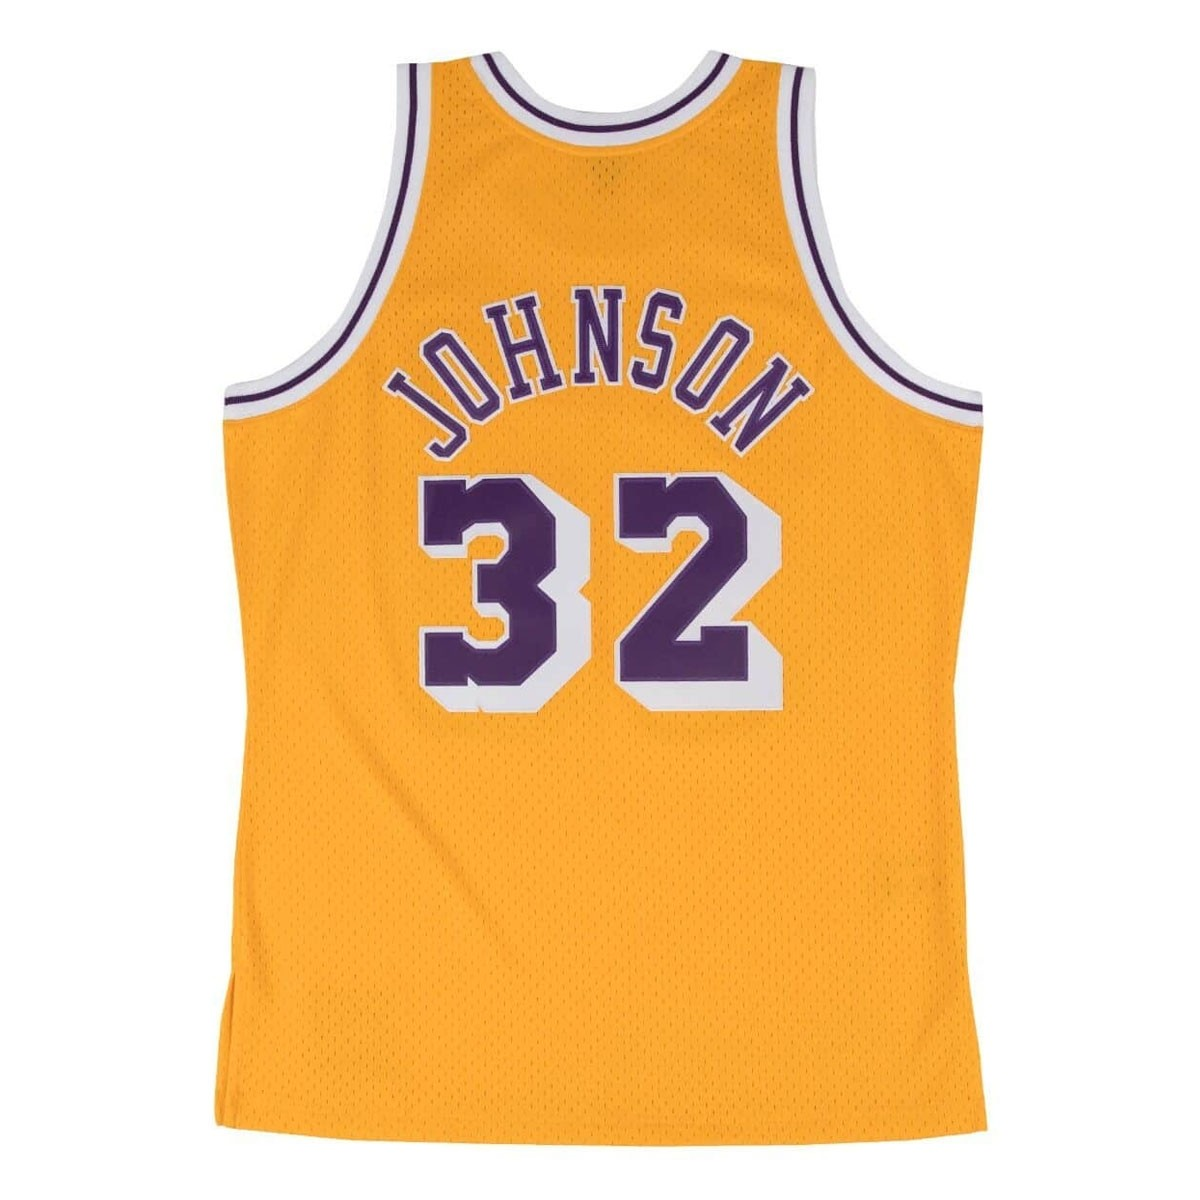 Mitchell & Ness Johnson Swingman Jersey Away 'Lakers' SMJYGS18175